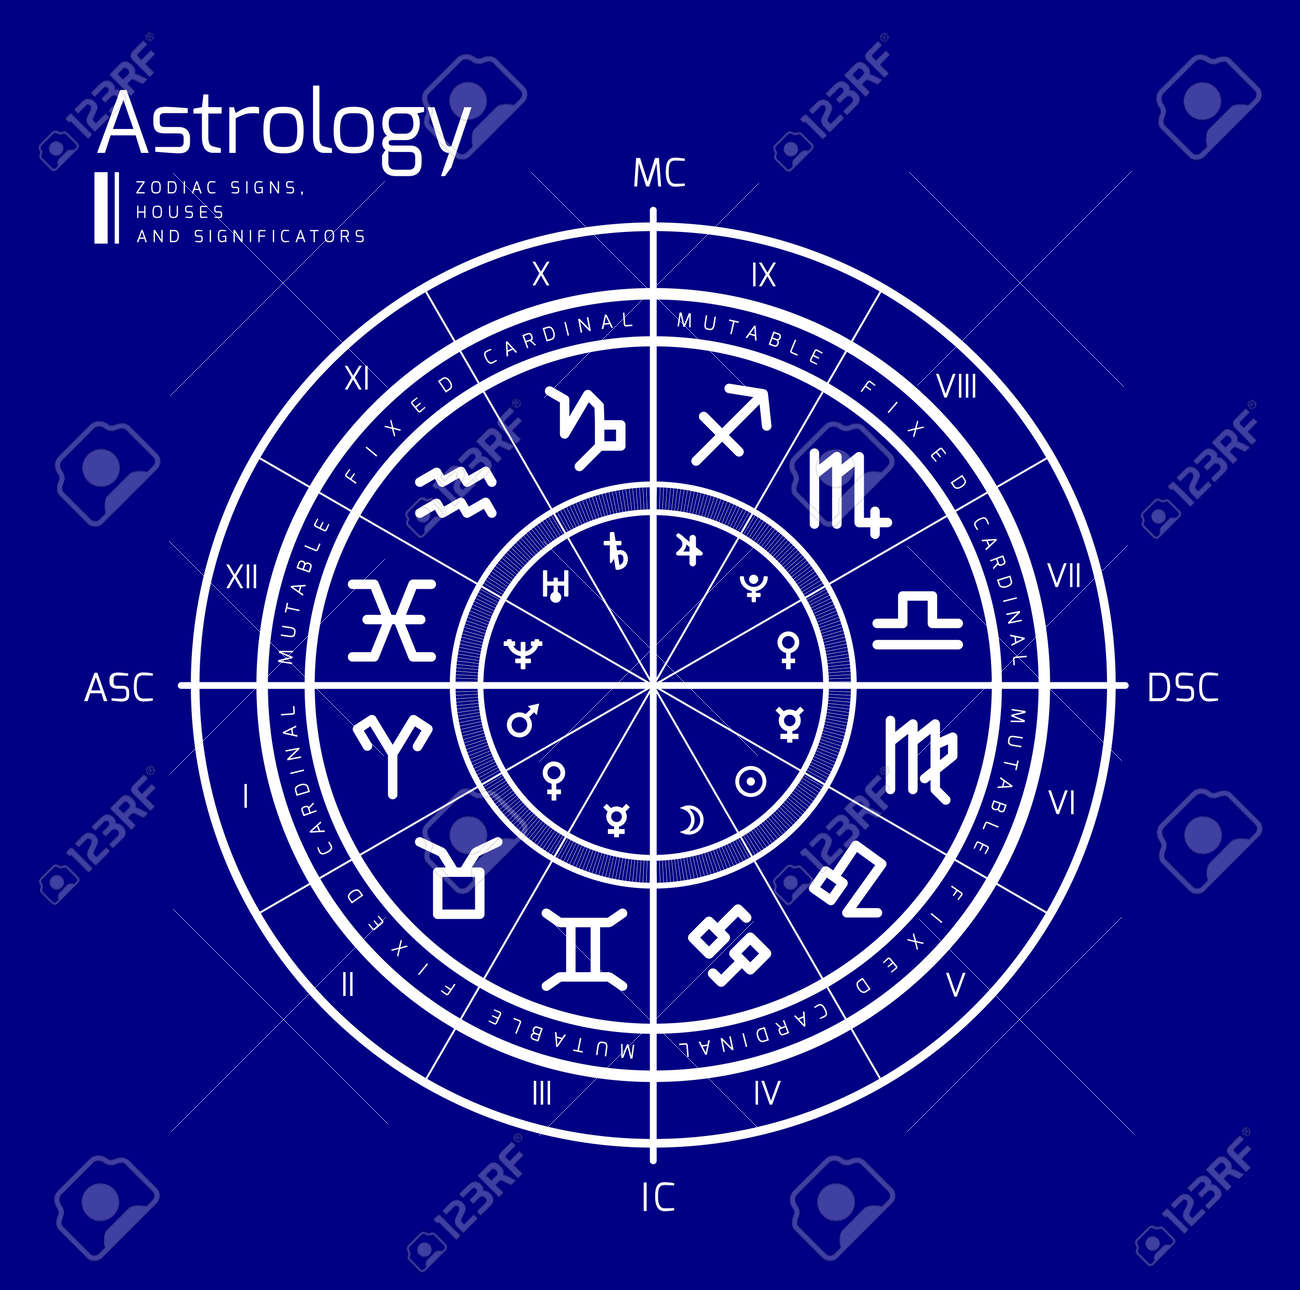 Astrology background natal chart zodiac signs houses and astrology background natal chart zodiac signs houses and significators vector illustration stock geenschuldenfo Gallery